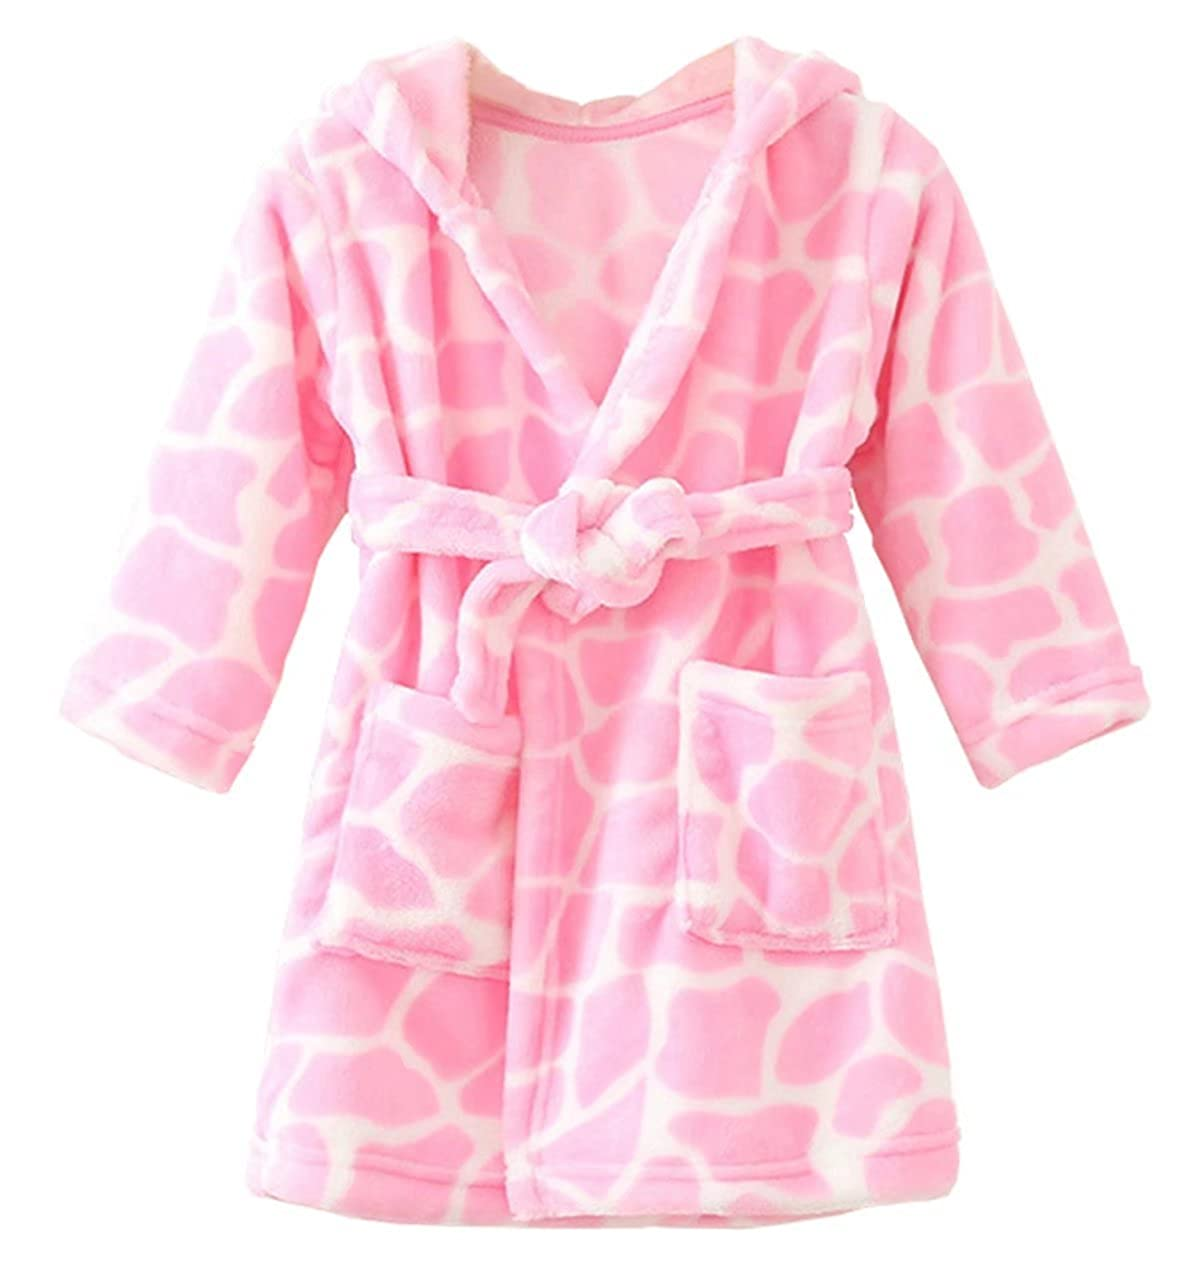 Betusline Unisex Kids Baby Flannel Bathrobes